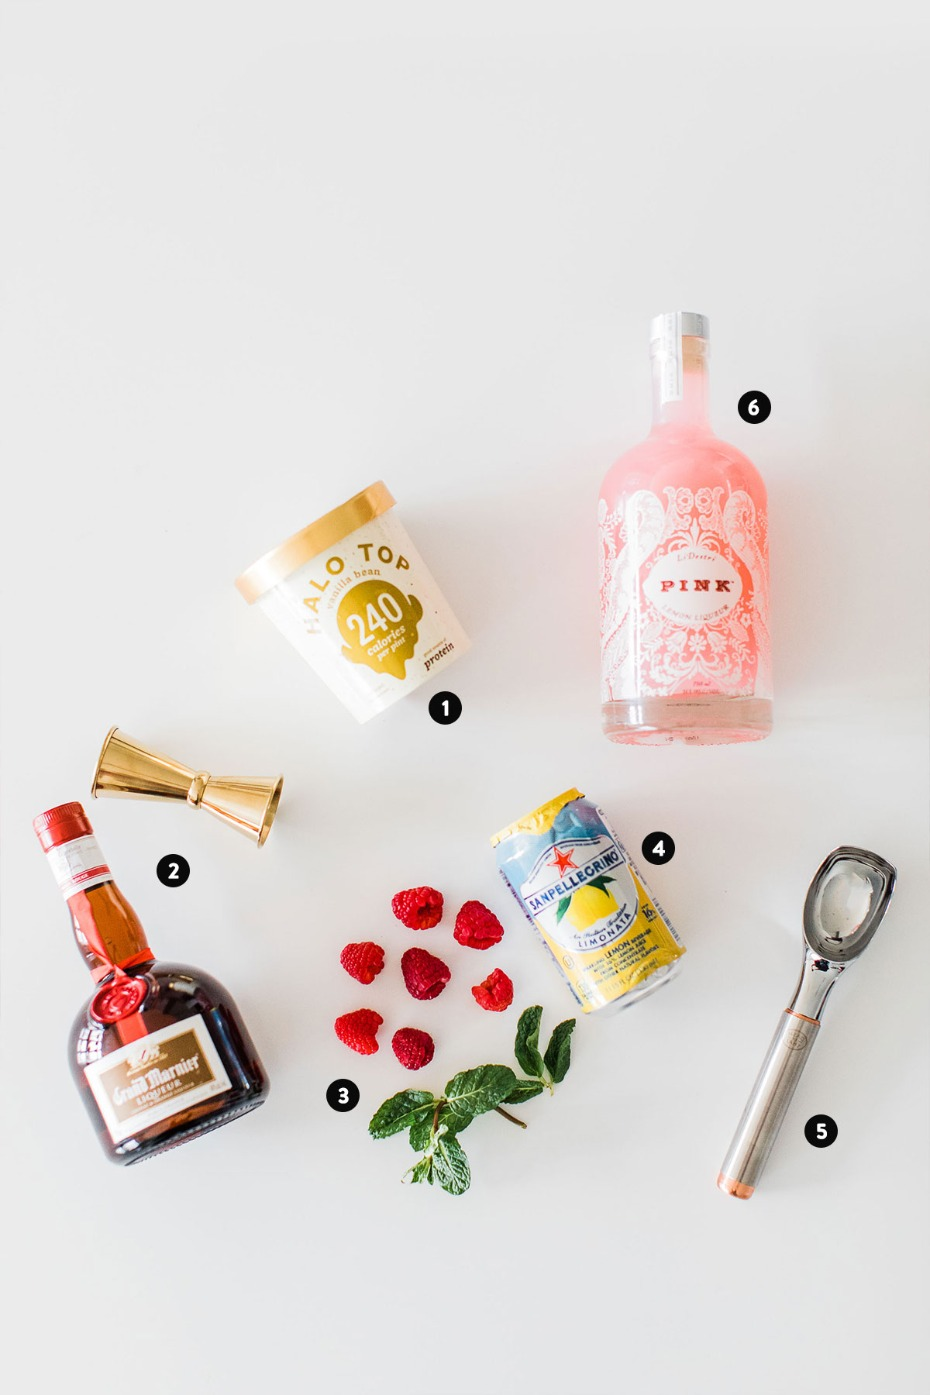 Ingredients For Sunset Ice Cream Float From LiDestri Pink Lemon Liqueur